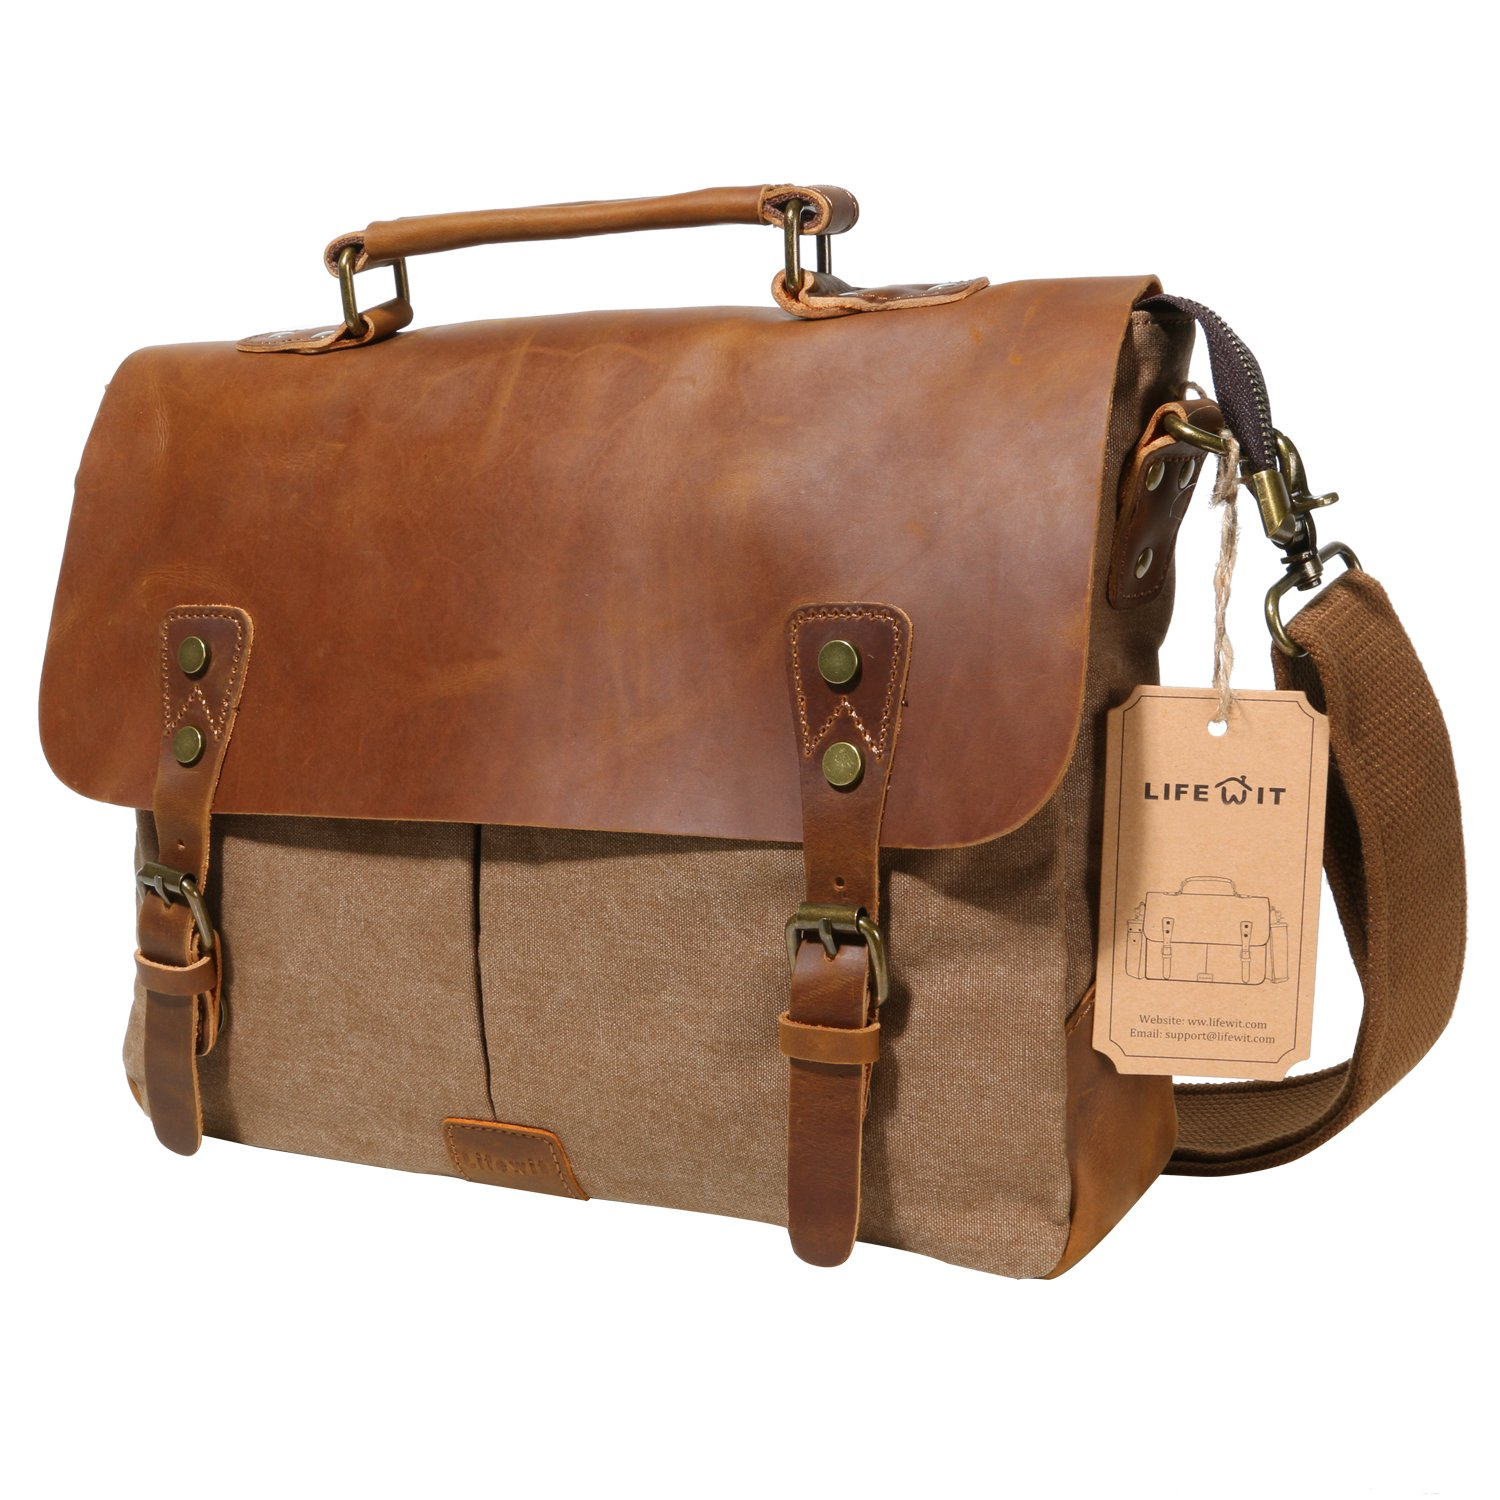 Lifewit Men Briefcase Leather Canvas Laptop Satchel Messenger Work Bag Fit up to 13.3-inch, Coffee